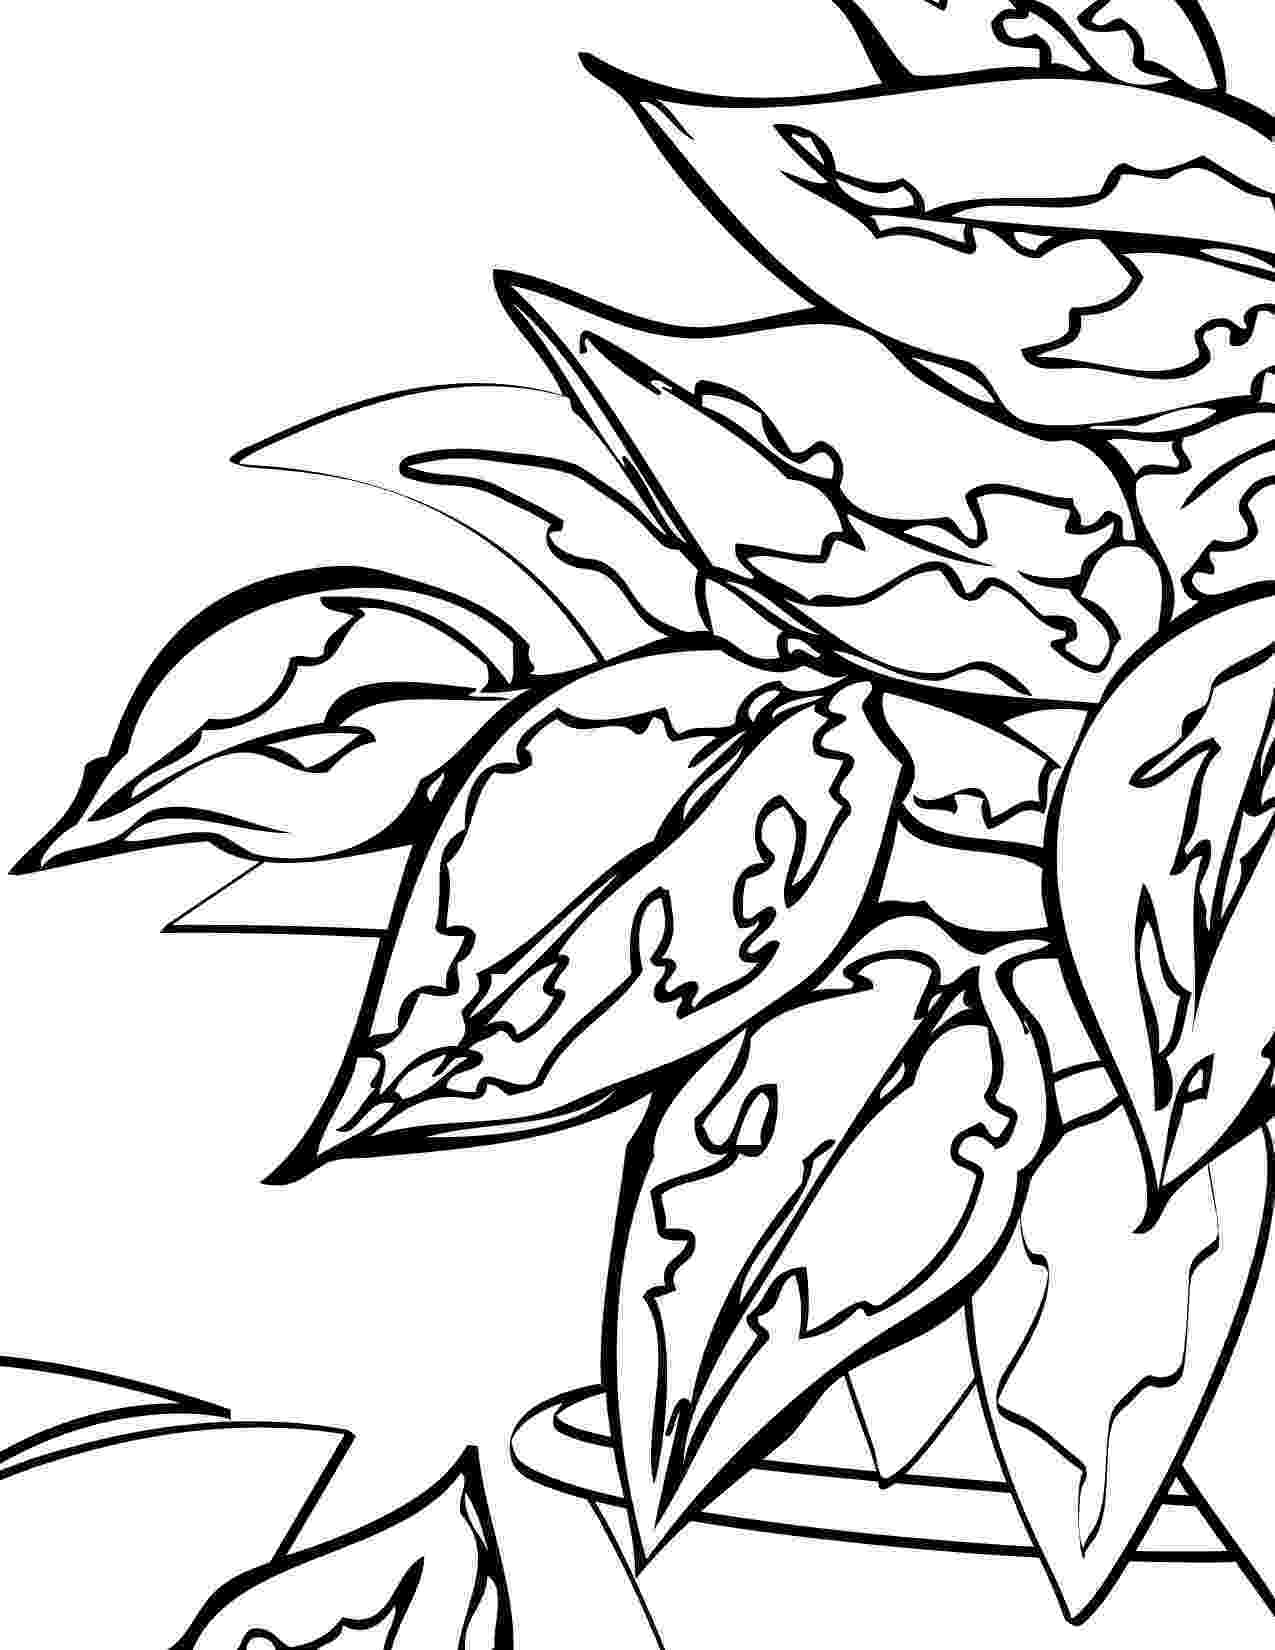 colouring pictures of plants plant coloring pages coloring pages to download and print of plants pictures colouring